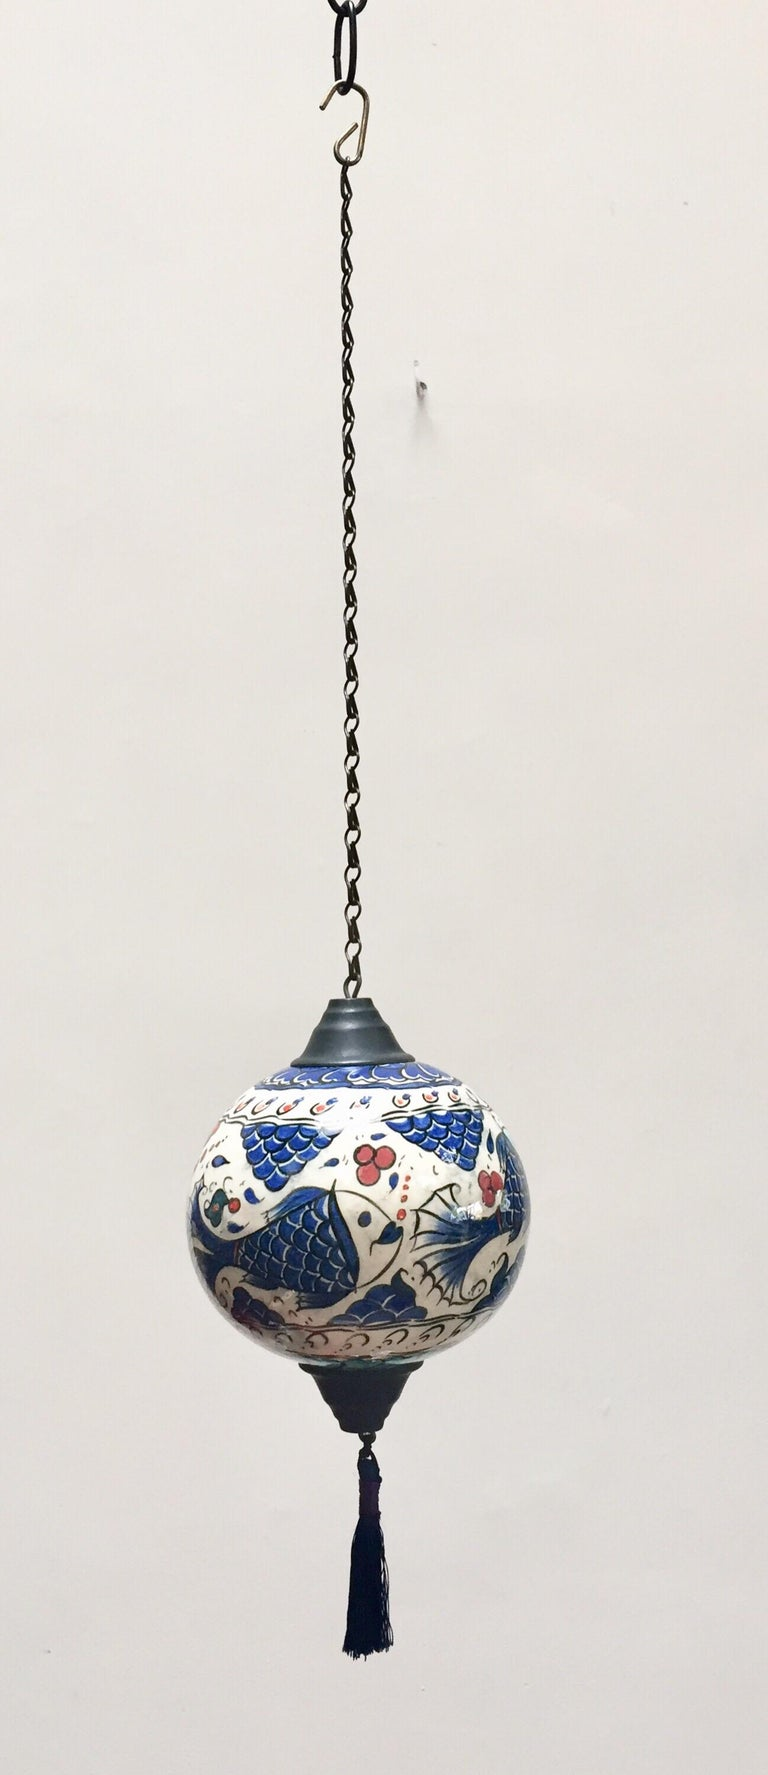 Kütahya pottery hanging ornaments in a bulbous form decorated with fishes underglaze in cobalt blue, turquoise and red on white background. Cobalt blue silk tassel, hang from a black painted chain. A Kütahya pottery hanging ornament in polychrome